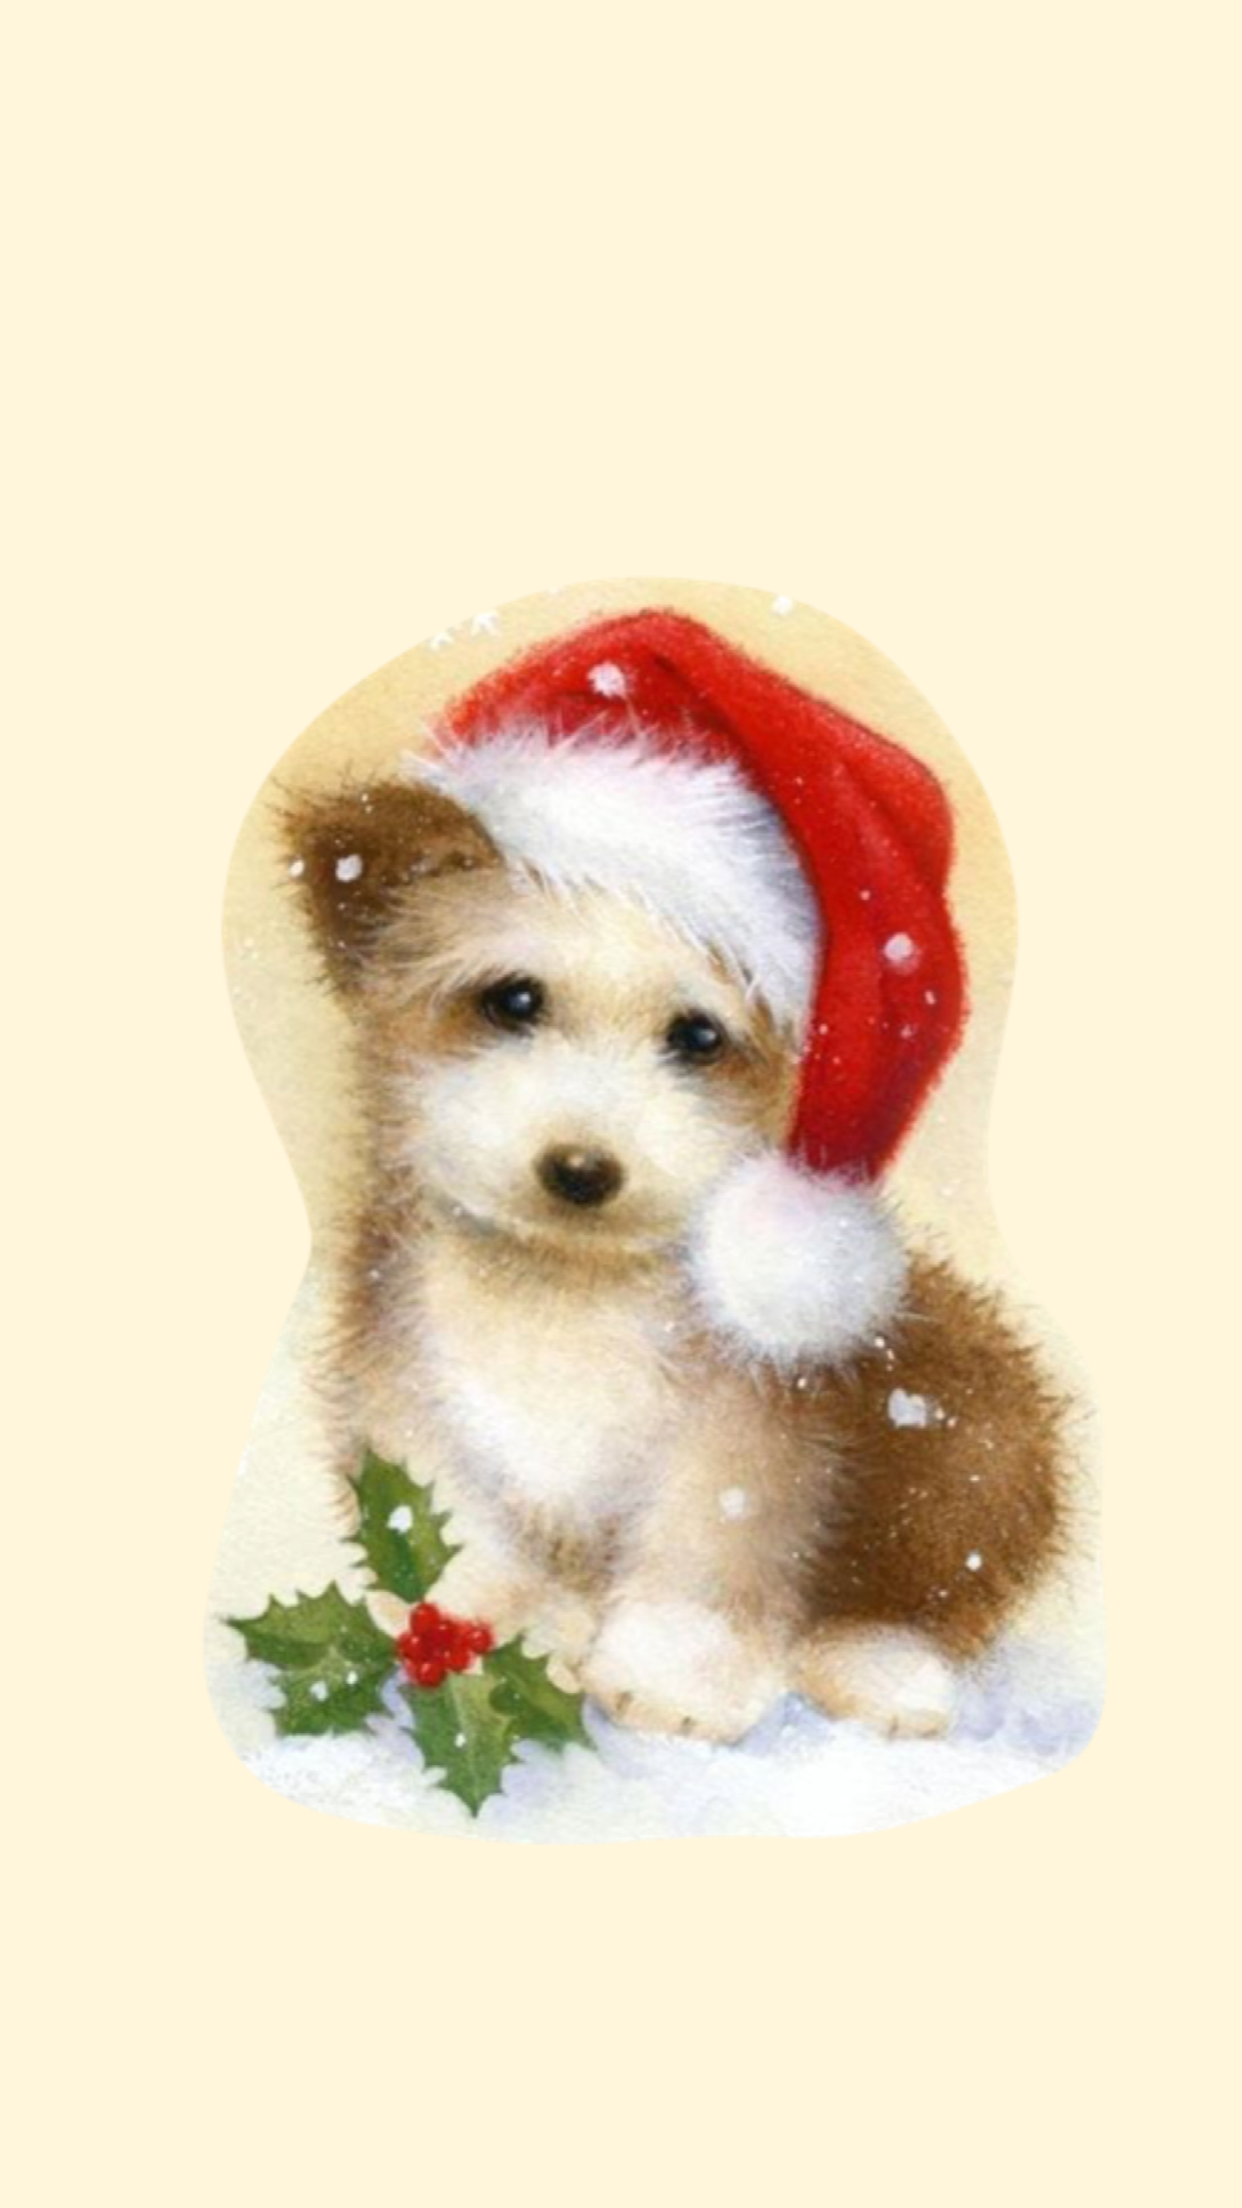 Pin by daria russ on new year christmas holidays wallpapers